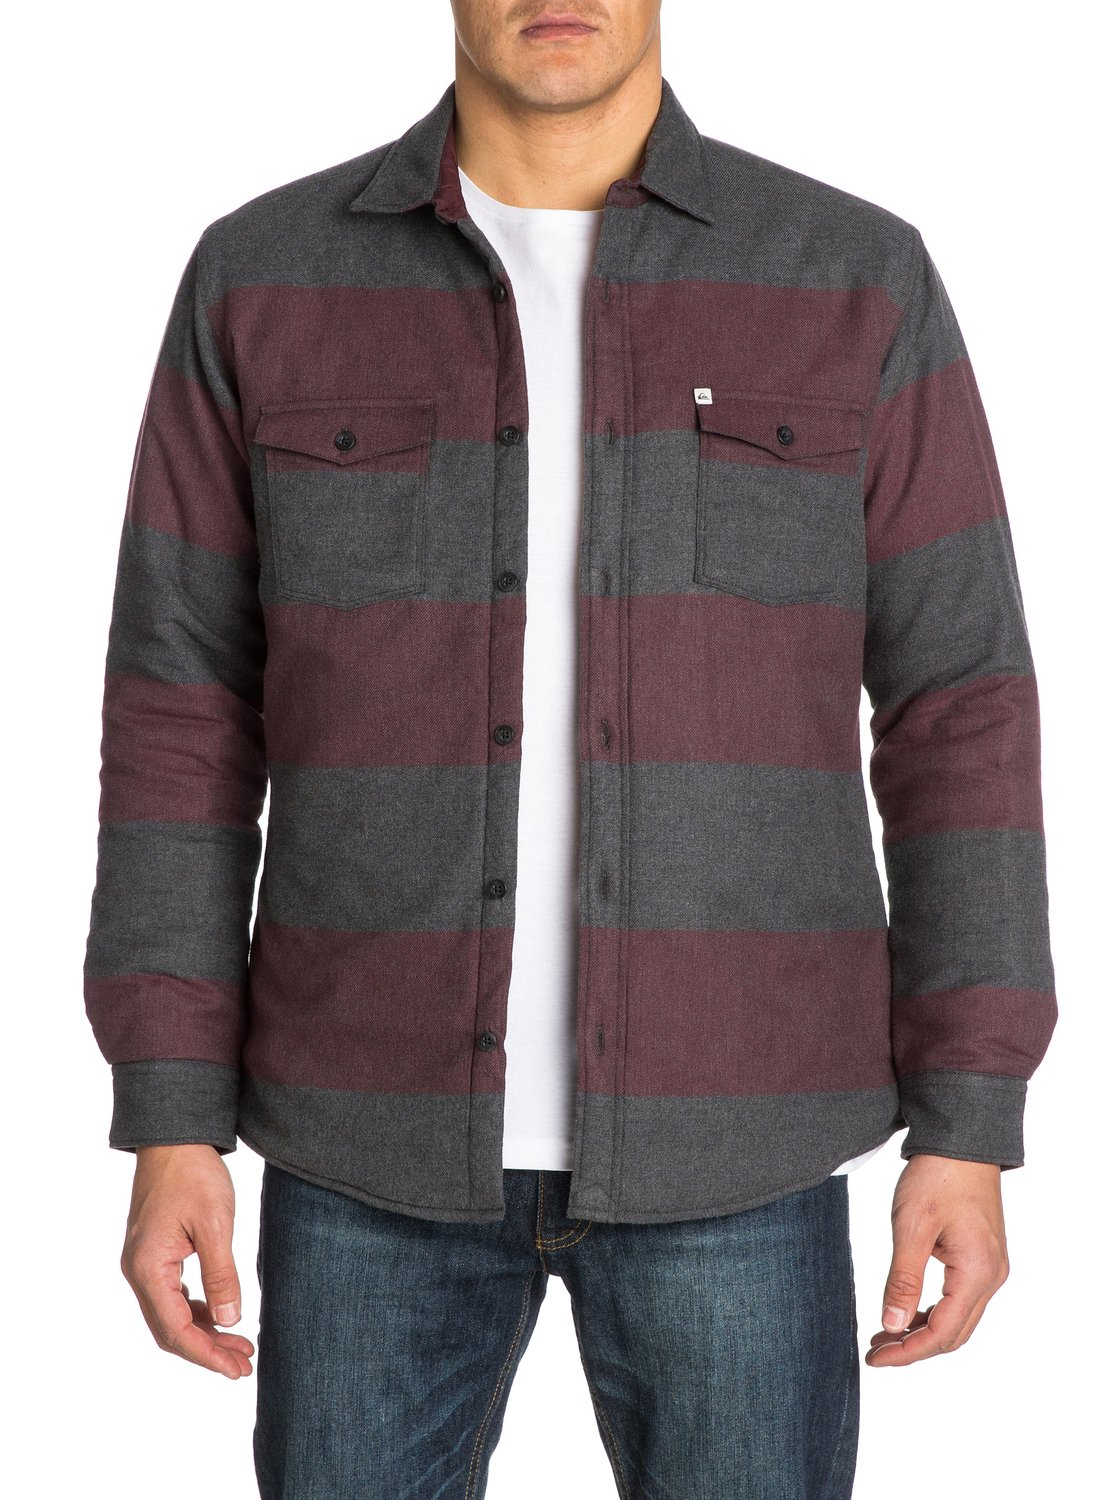 Cente Marche Long Sleeve Flannel Shirt. $ New. Like. SUPERISM. Brody Button Up Long Sleeve Flannel Shirt (Toddler/Little Kids/Big Kids) $ New. Like. SUPERISM. Brody Button Up Long Sleeve Flannel Shirt (Toddler/Little Kids/Big Kids) $ Like. RVCA. That'll Work Flannel Long Sleeve. $ MSRP: $